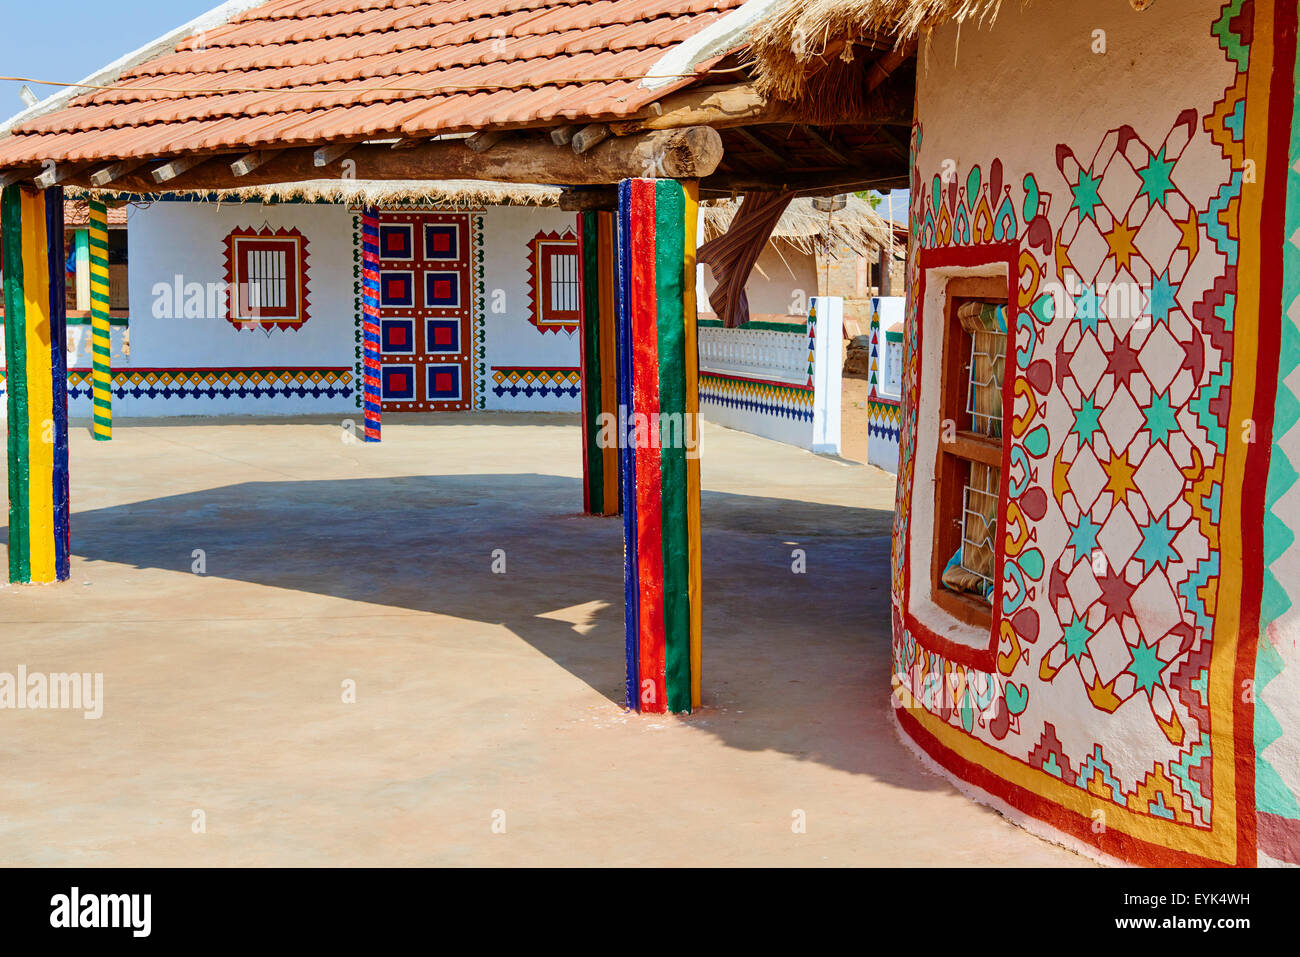 India, Gujarat, Kutch, Ludia village, Harijan ethnic group - Stock Image